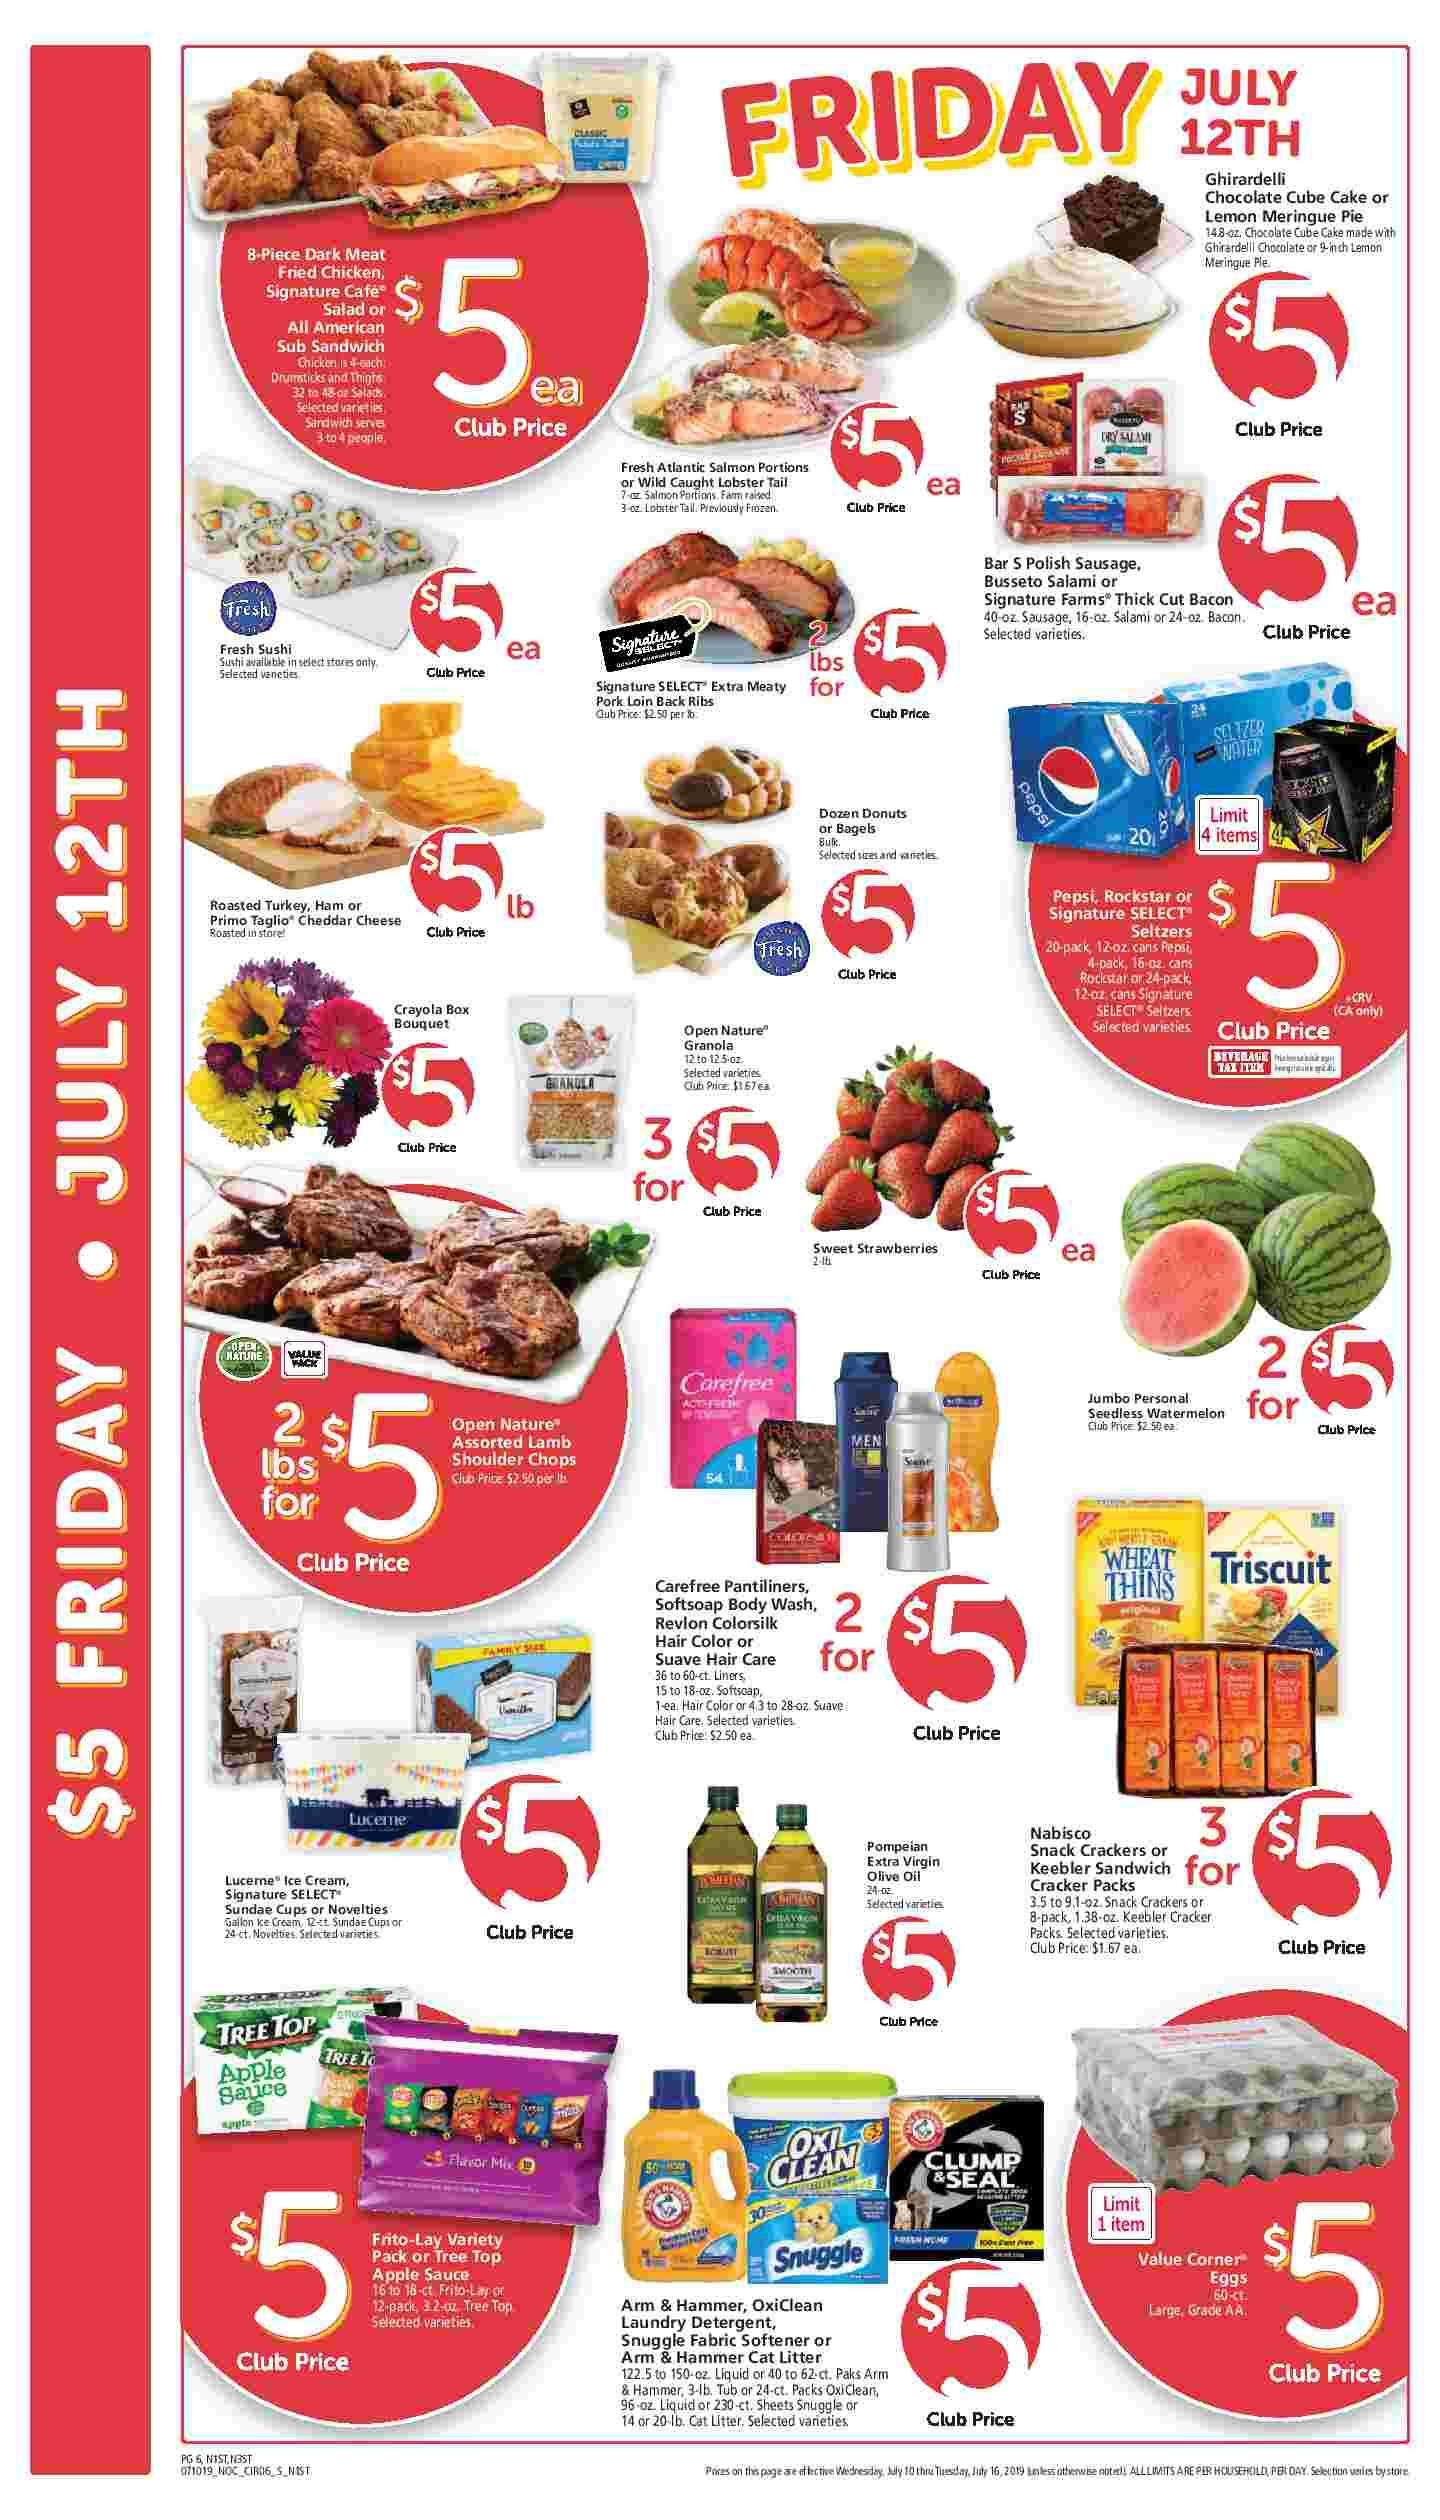 Safeway 5 Friday Ad Flyer June 4th 2021 Weekend Sale Weeklyad123 Com Weekly Ad Circular Grocery Stores Grocery Ads Grocery Savings Digital Coupons